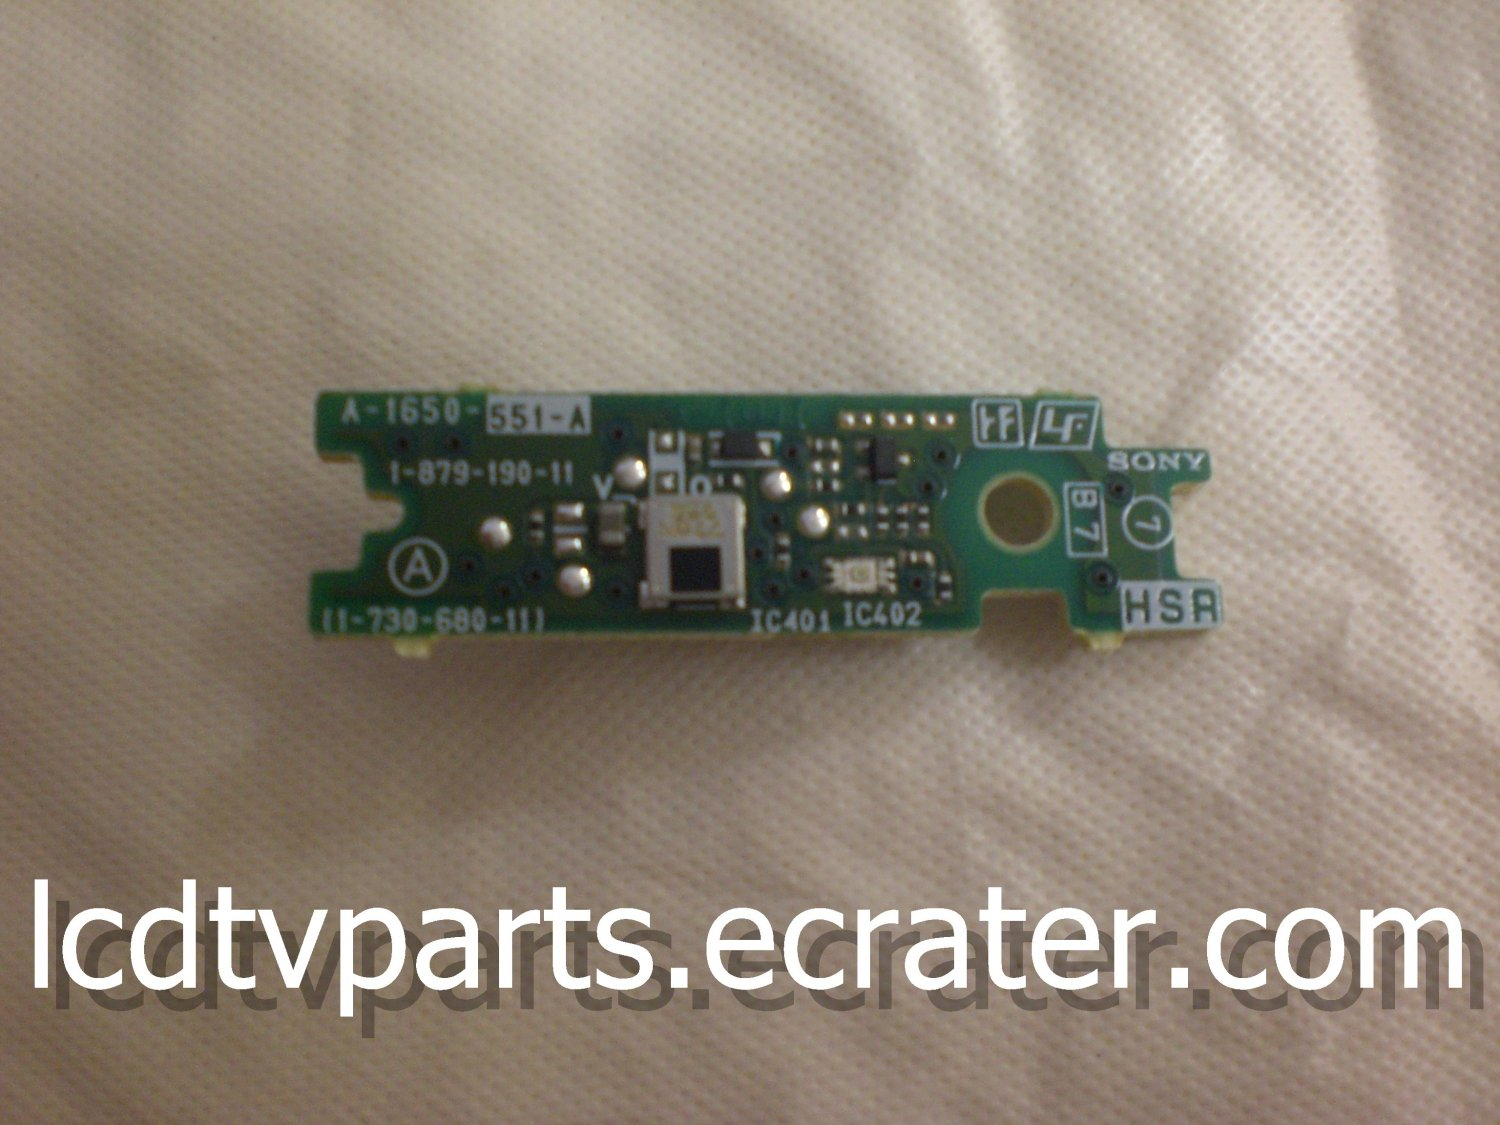 A-1650-551-A, 1-879-190-11, (1-730-680-11), LED IR ASSY For SONY KDL-46V5100